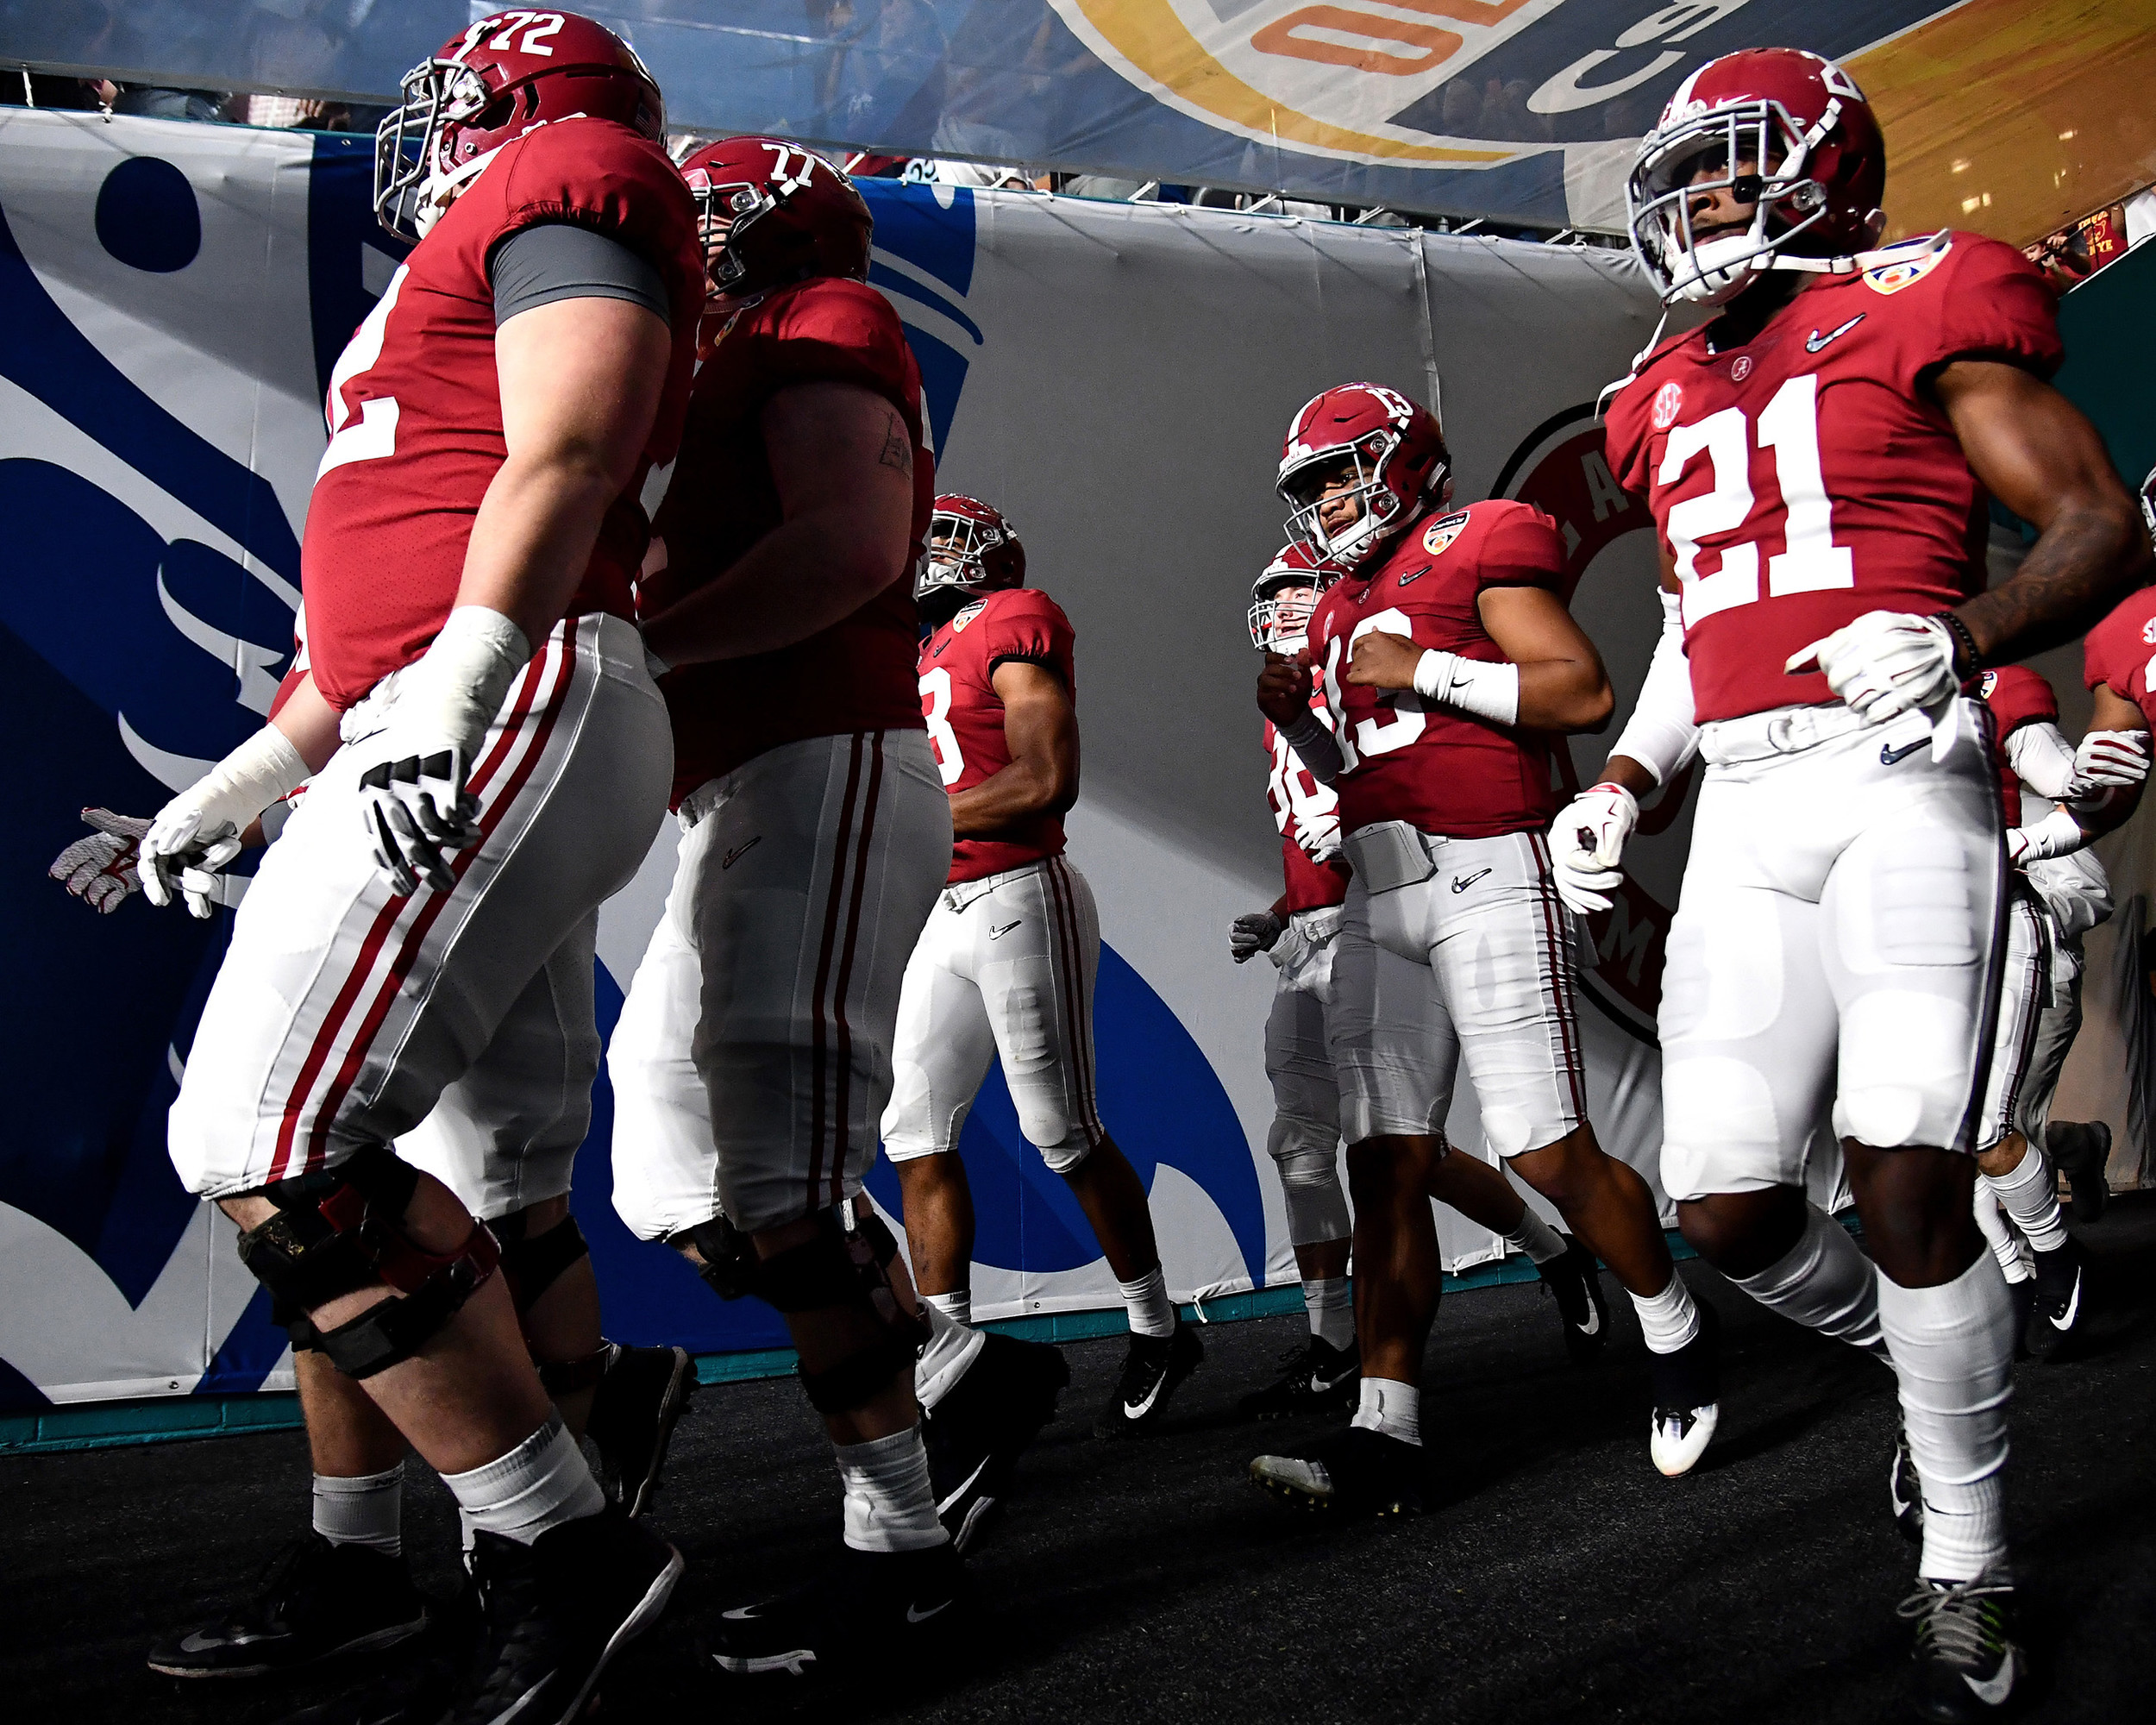 Alabama Crimson Tide quarterback Tua Tagovailoa (13), along with his teammates, exits the tunnel prior to the start of the Capital One Orange Bowl, featuring Alabama and the Oklahoma Sooners, at Hard Rock Stadium in Miami Gardens, Fla., Saturday, Dec. 29, 2018. Alabama wins 45-34. (Photo by Lee Walls)